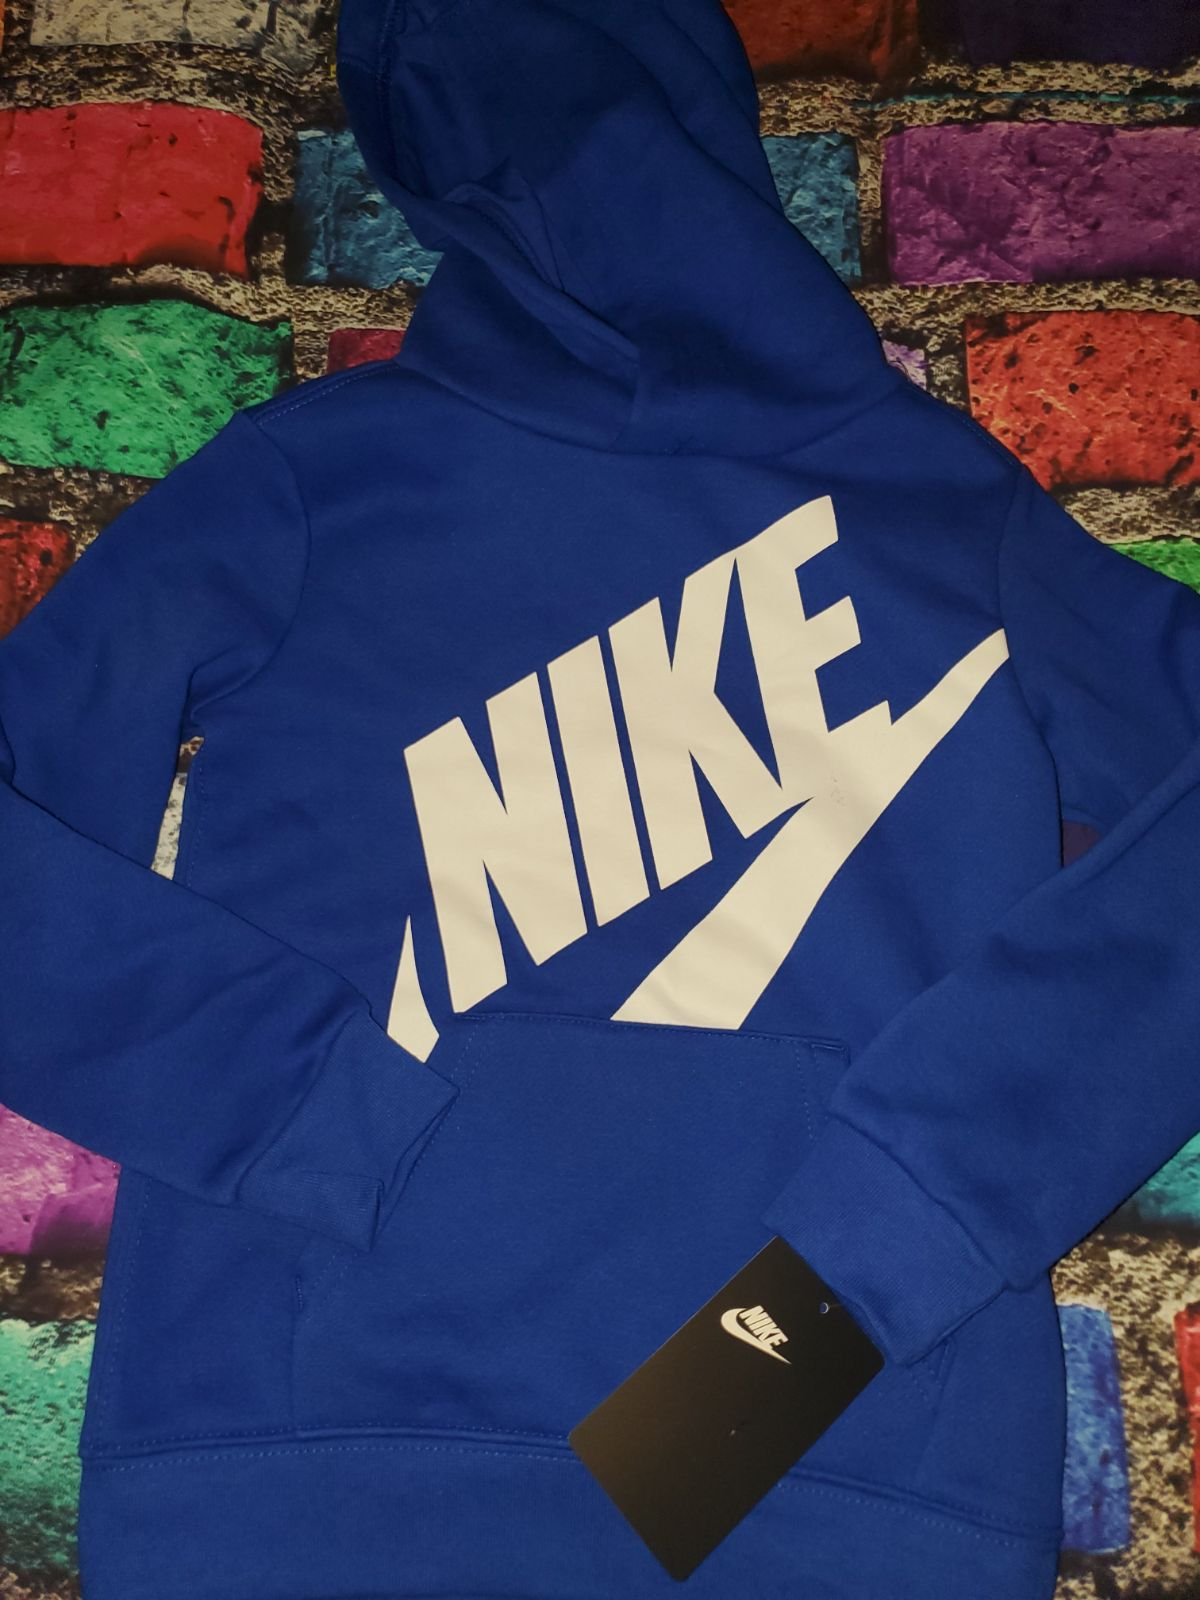 New With Tags Nike Hooded Sweatshirt Pullover Boys 4 4t Royal Blue And White Sweatshirts Sweatshirts Hoodie Pullover Sweatshirts [ 1600 x 1200 Pixel ]